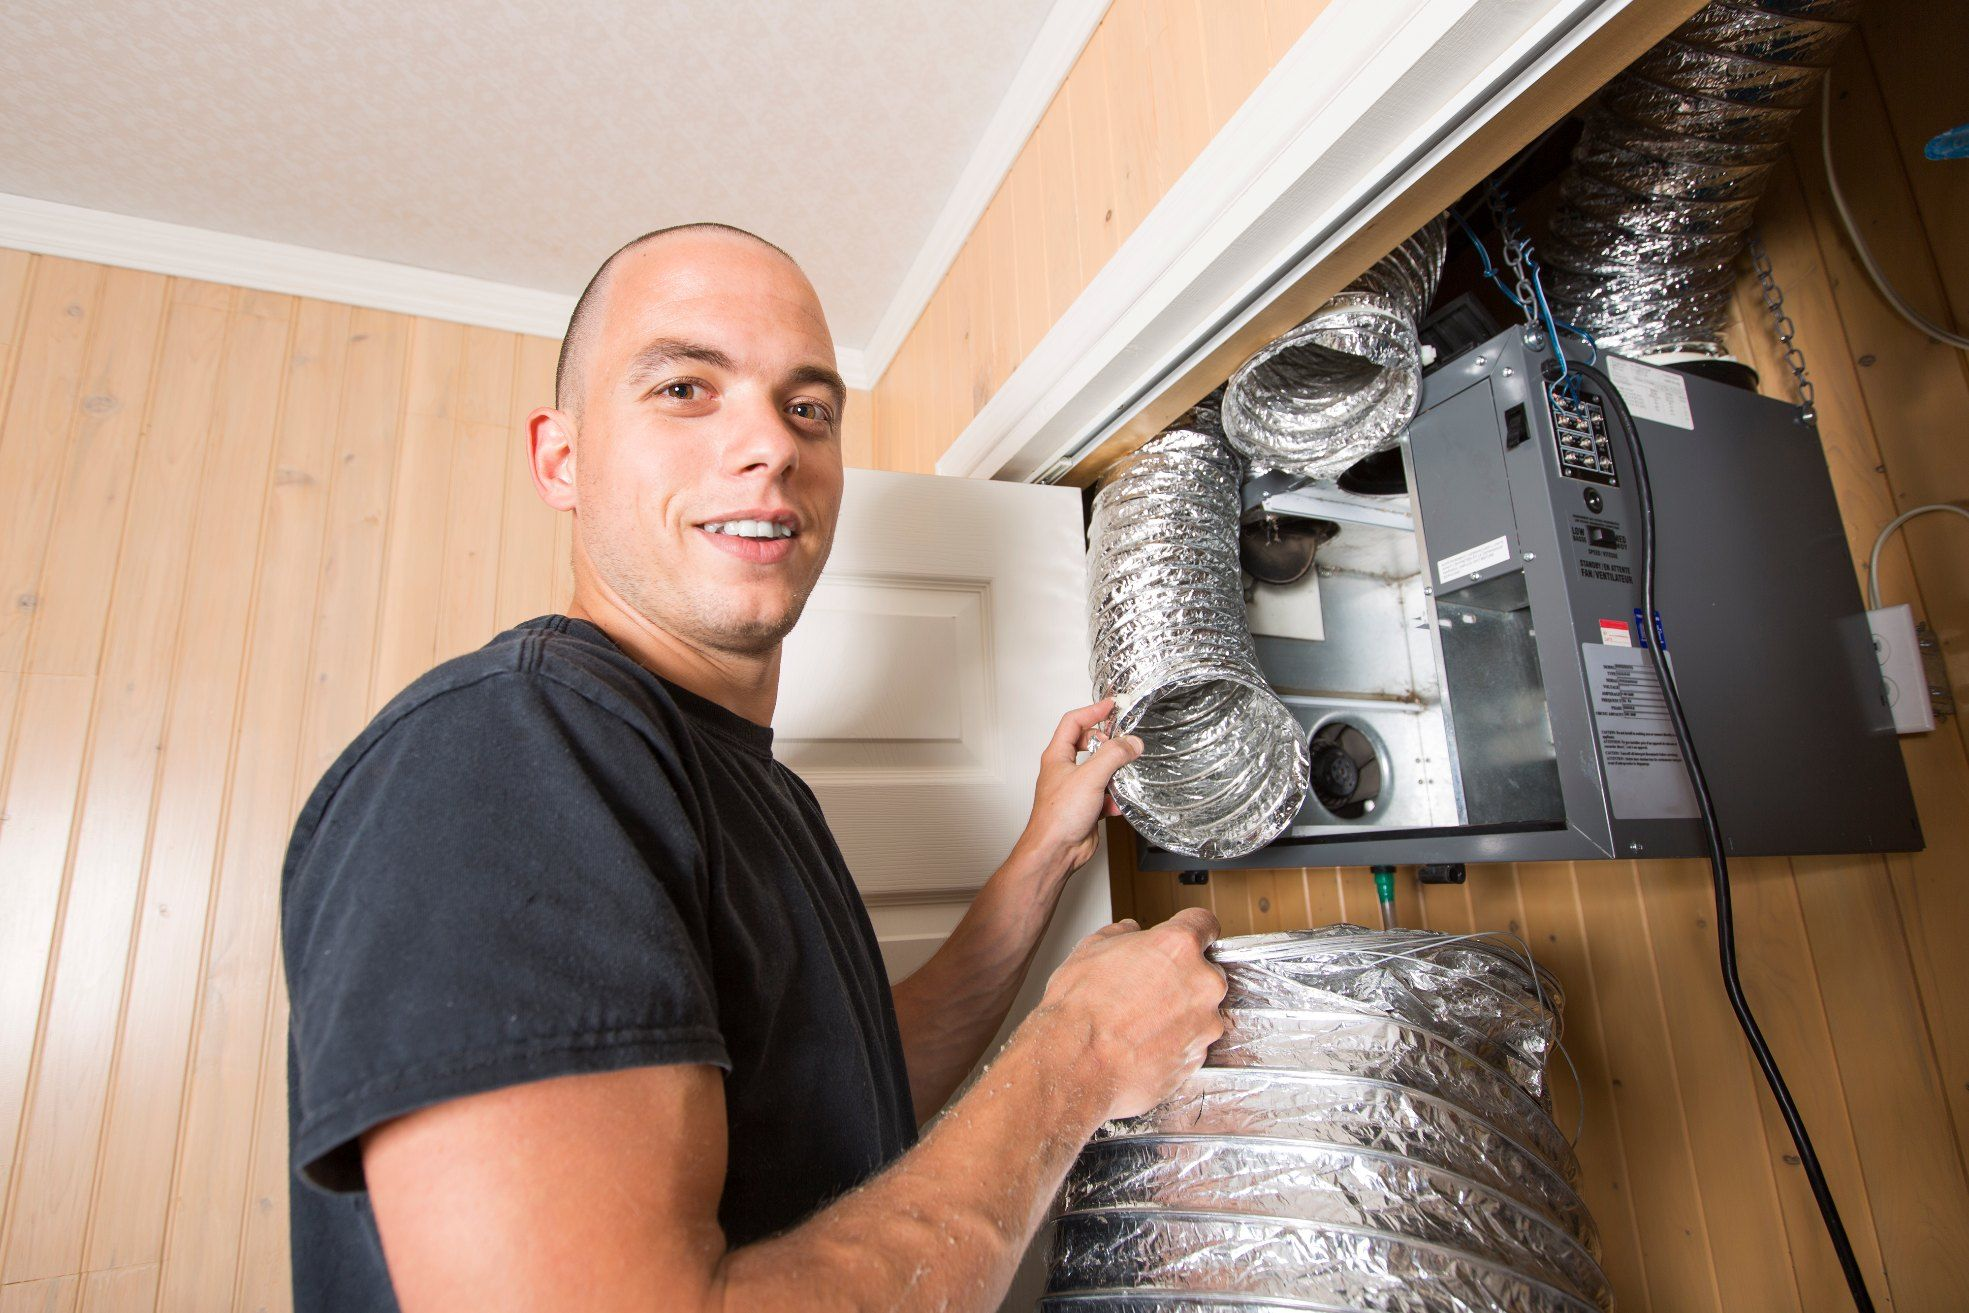 Looking For A Duct Work Specialist Turn To Exclusive Air Duct Cleaning Phoenix We Have Been Serving In Phoenix Local With Images Clean Air Ducts Duct Work Duct Cleaning